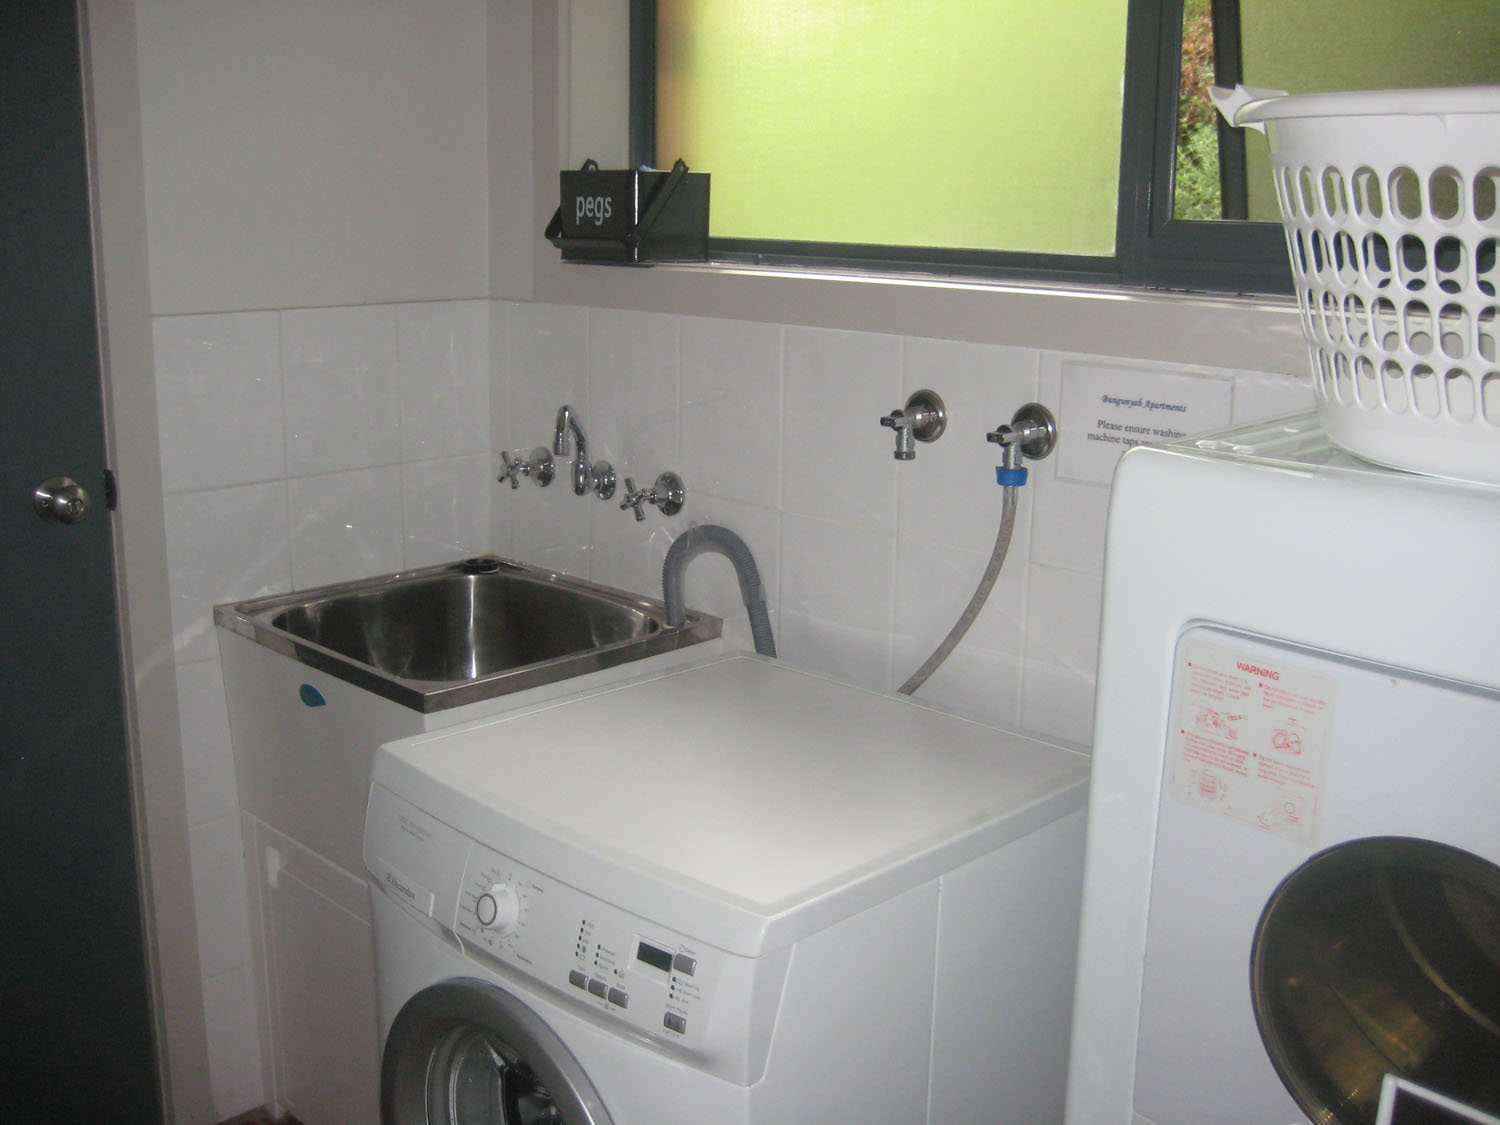 3 bedroom villa unit laundry